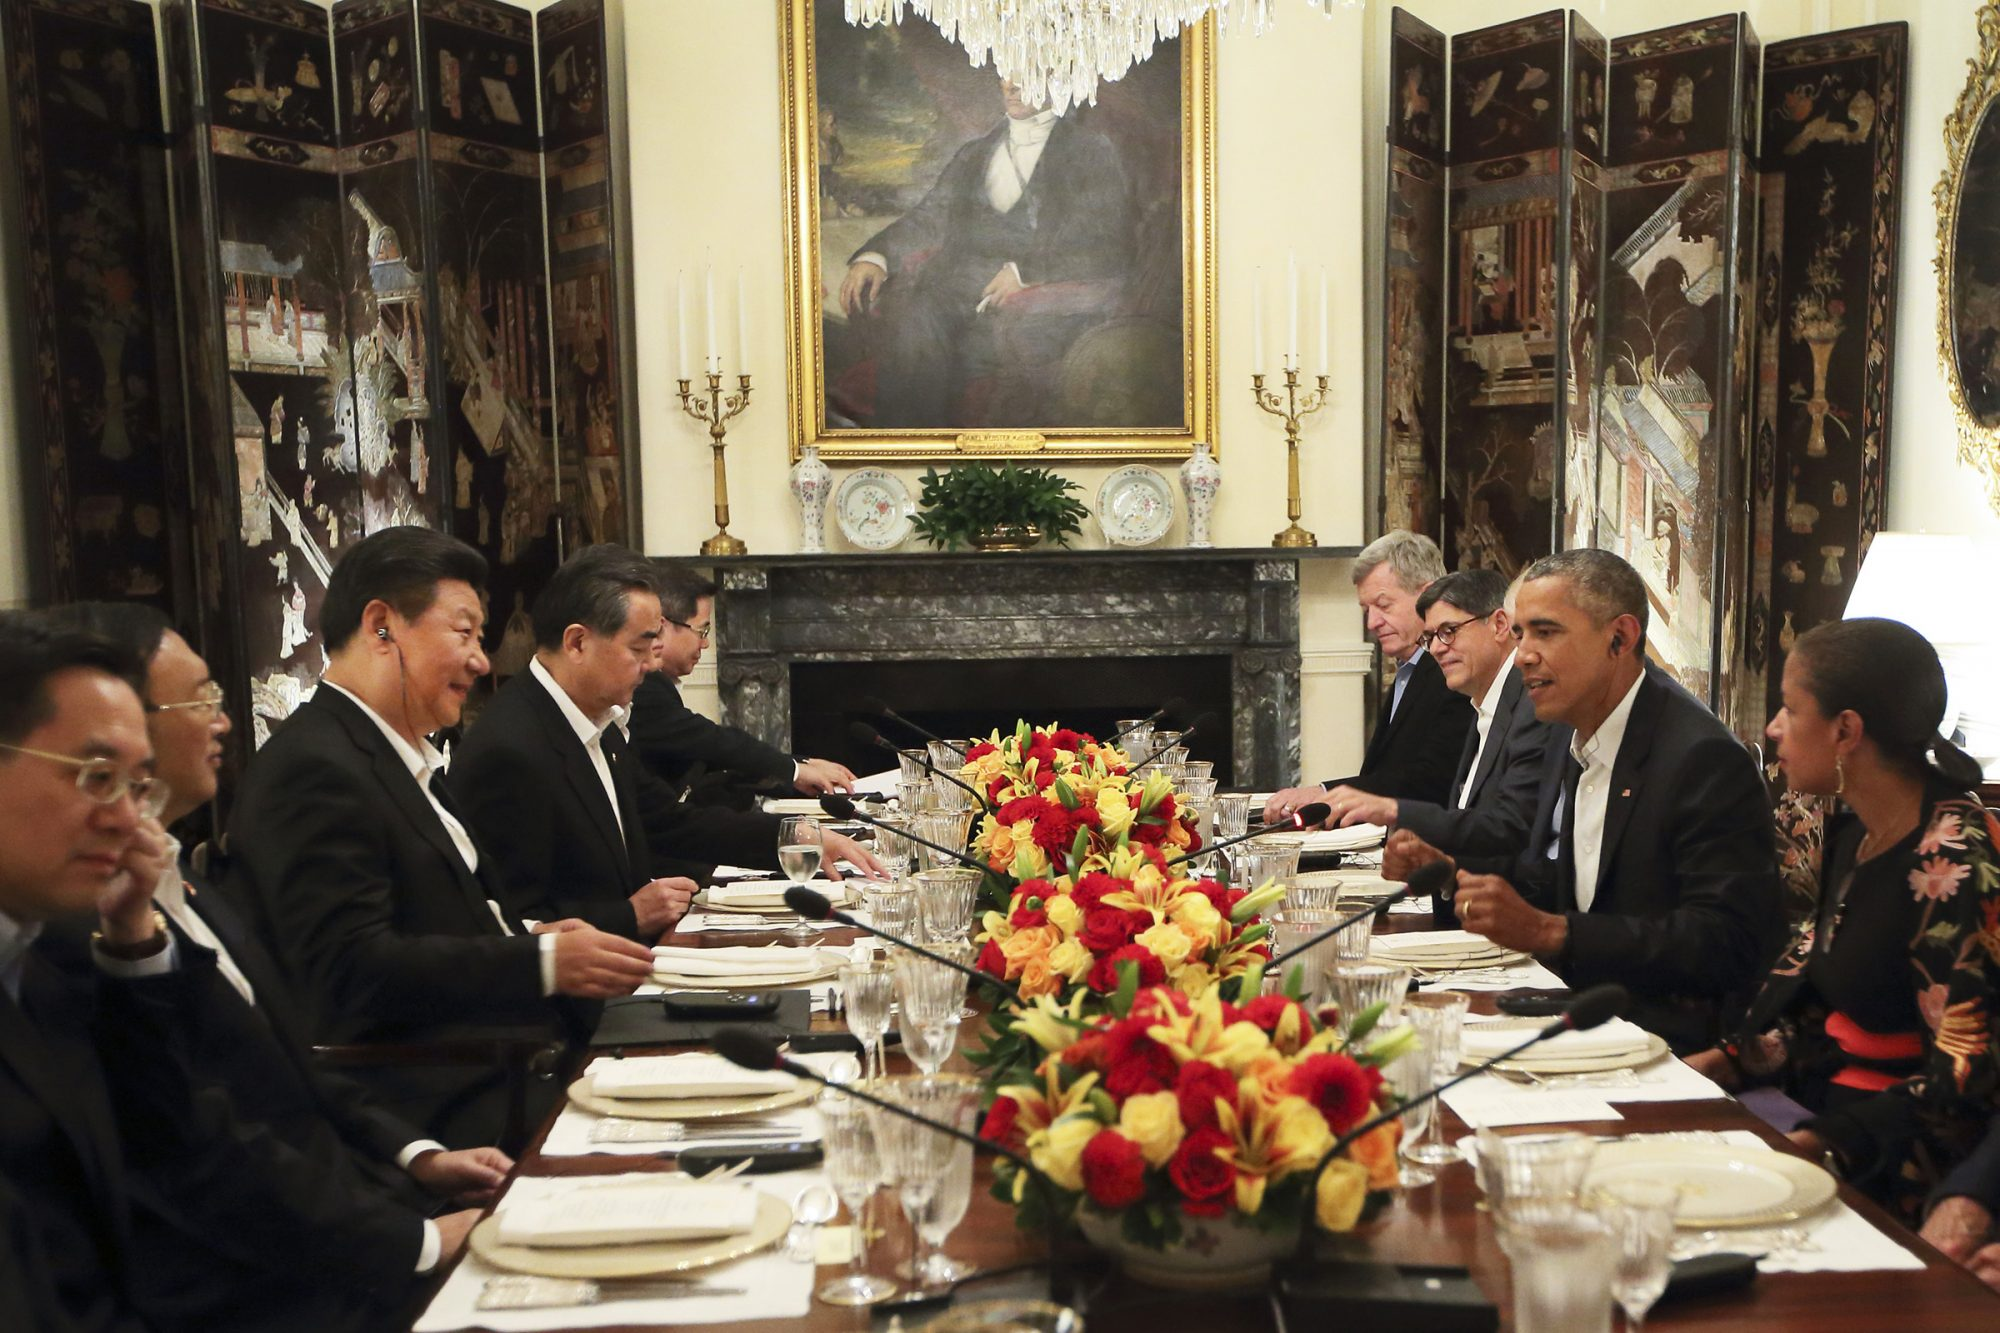 Chinese President Xi Jinping, third left, meets with U.S. President Barack Obama, second right, at the Blair House in Washington D.C., the United States, Sept. 24, 2015